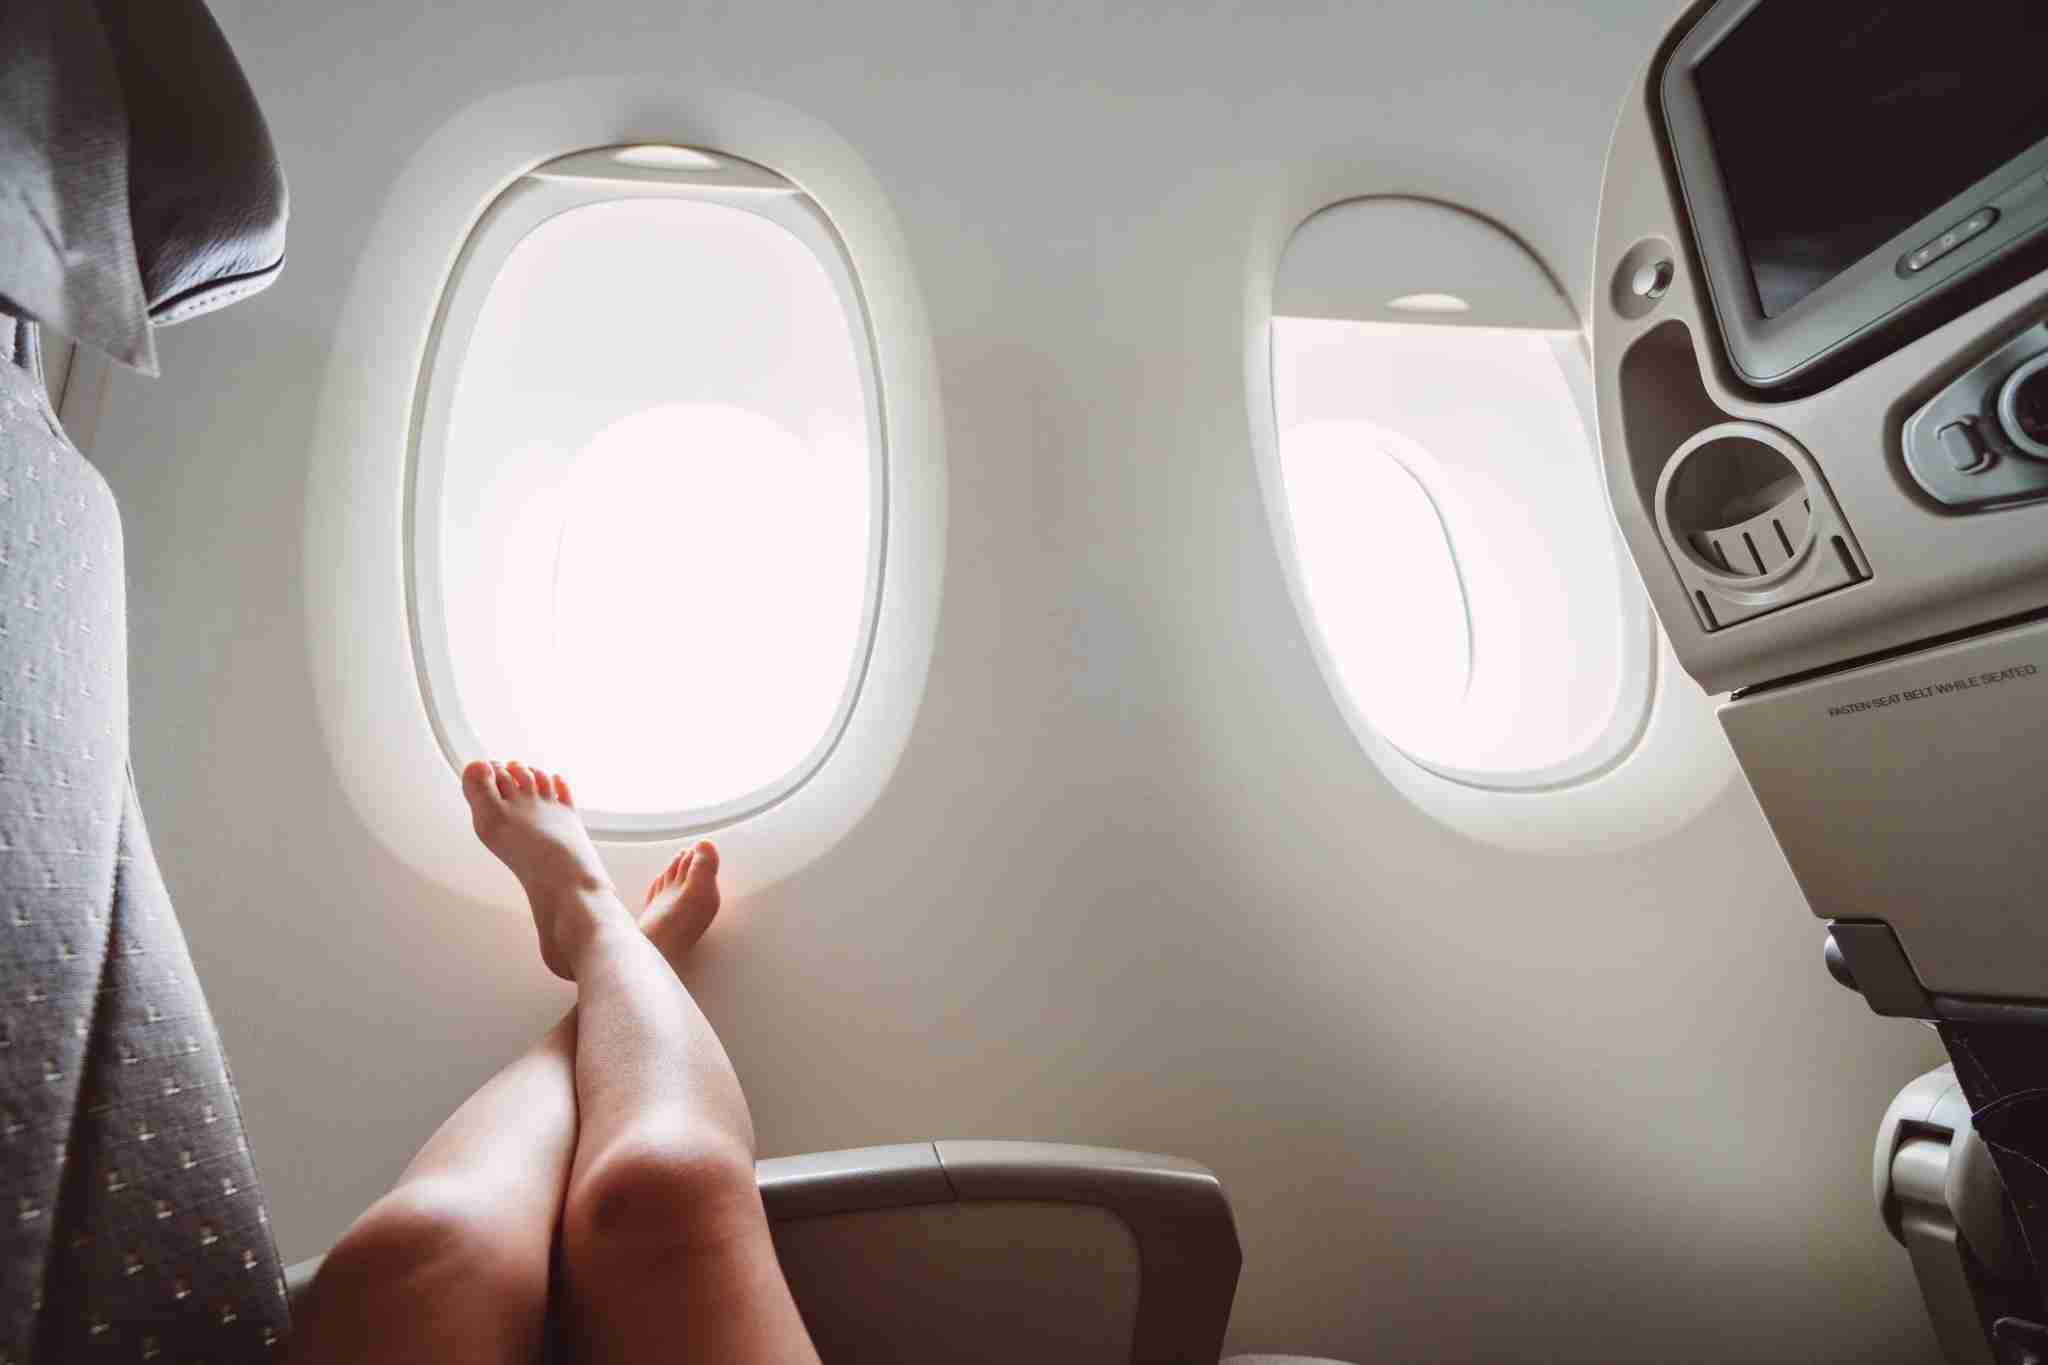 Little girl relaxing and putting her feet on the arm rest lying down on the seat in the aircraft cabin